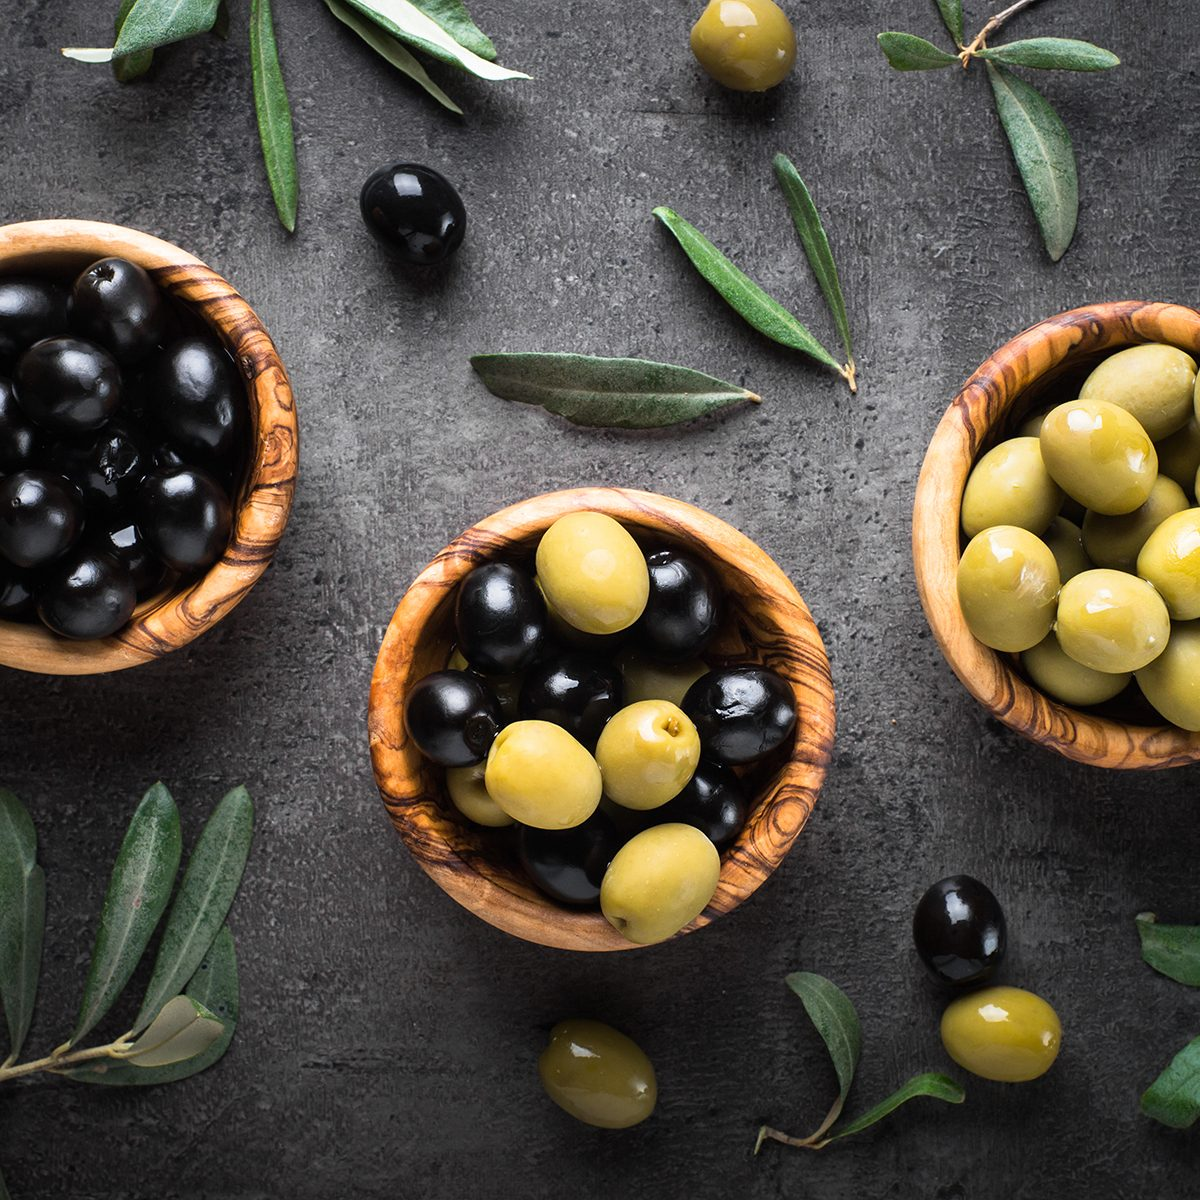 Black and green olives in wooden bowls.